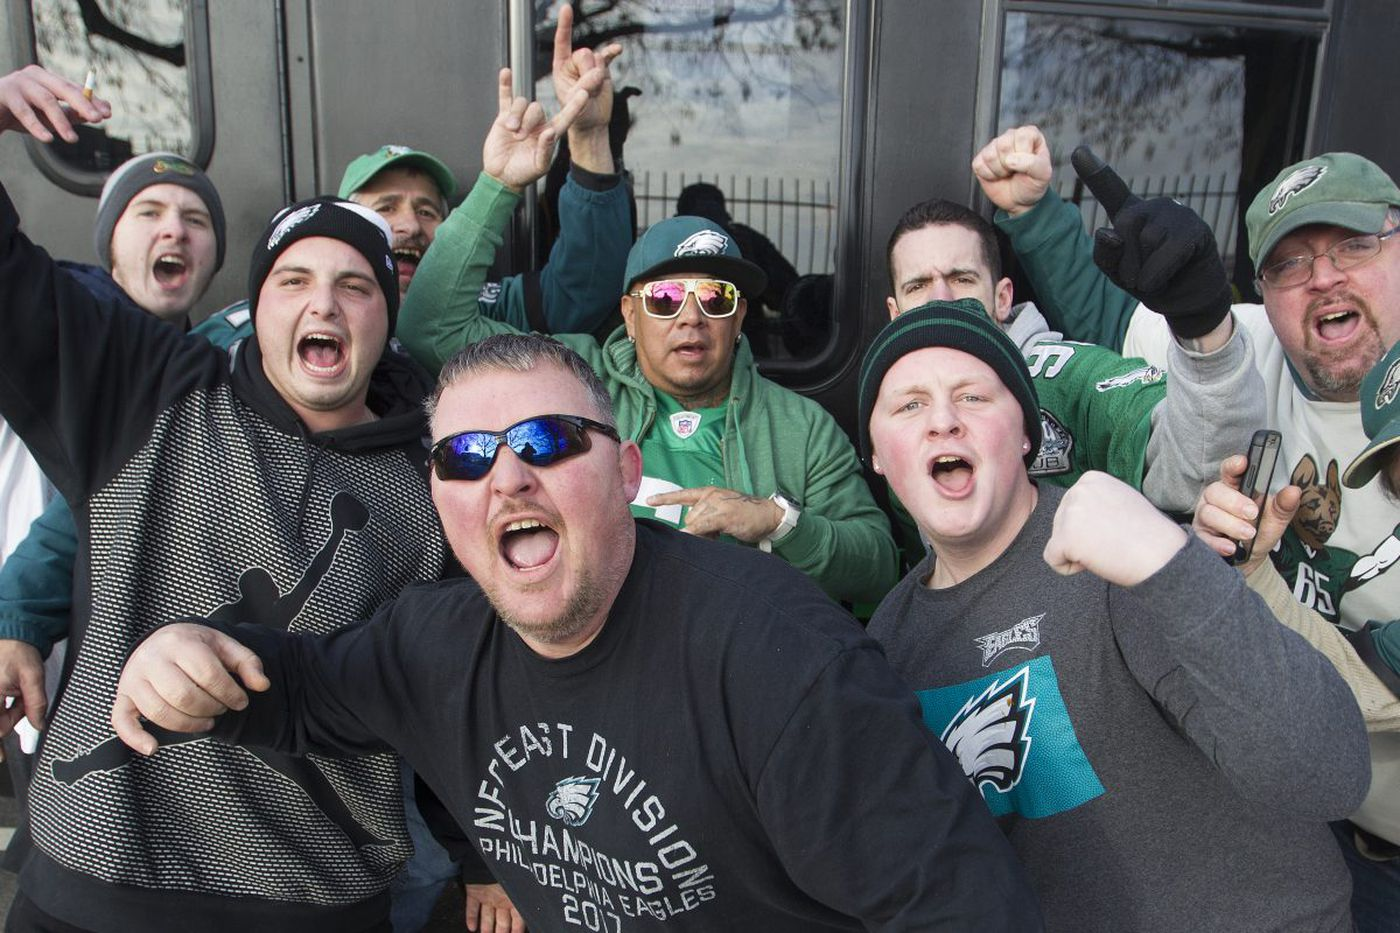 Eagles faithful start the party early and want one more - at the Super Bowl